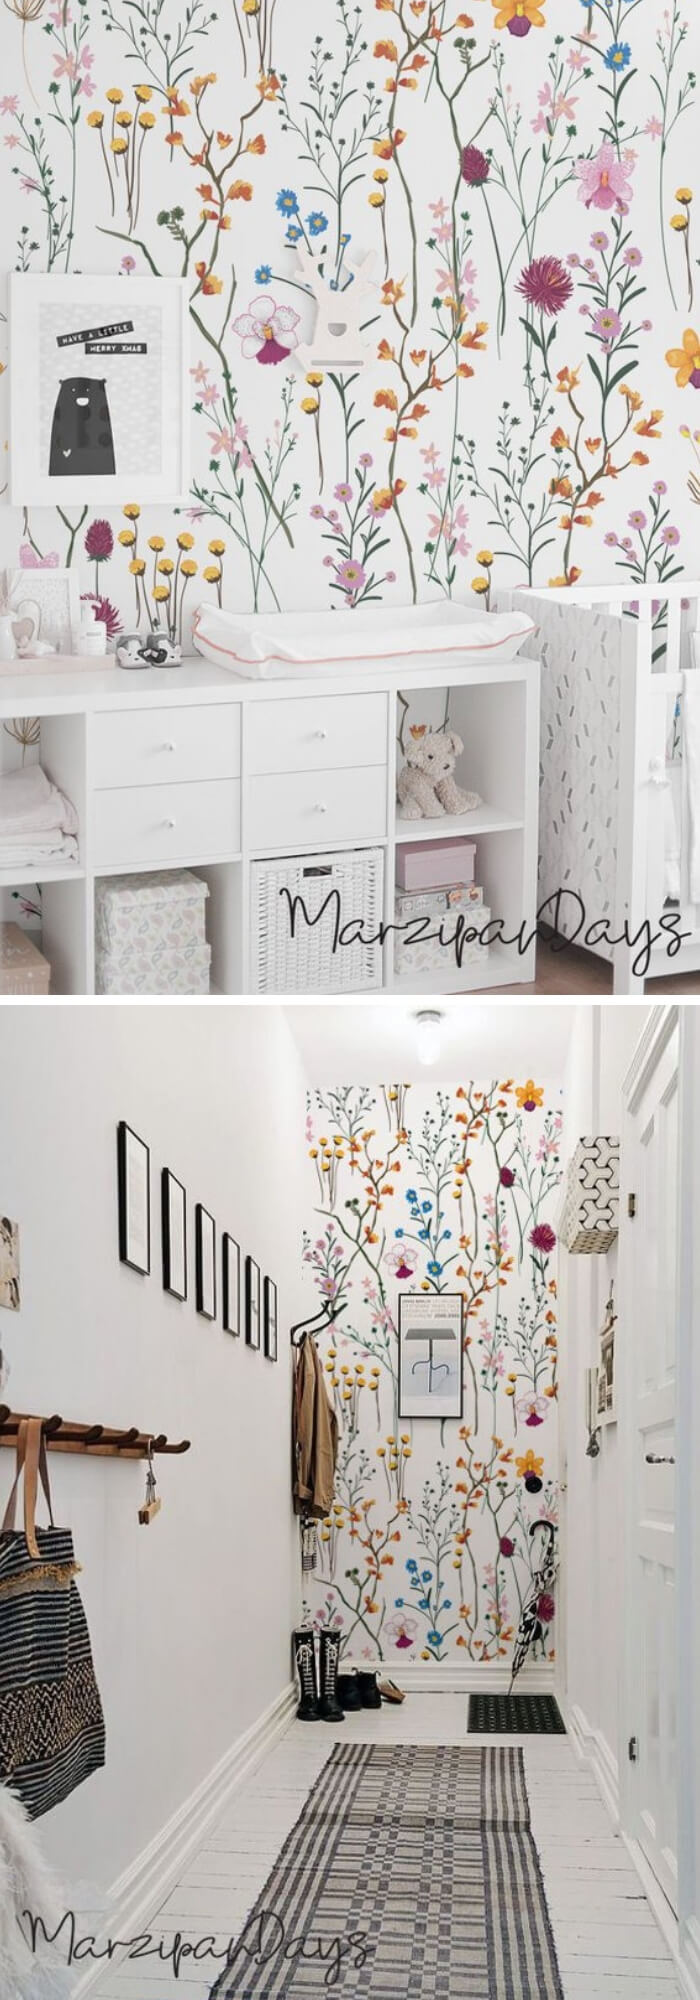 Home Decorating Ideas With Flowers: Wild flowers removable wallpaper